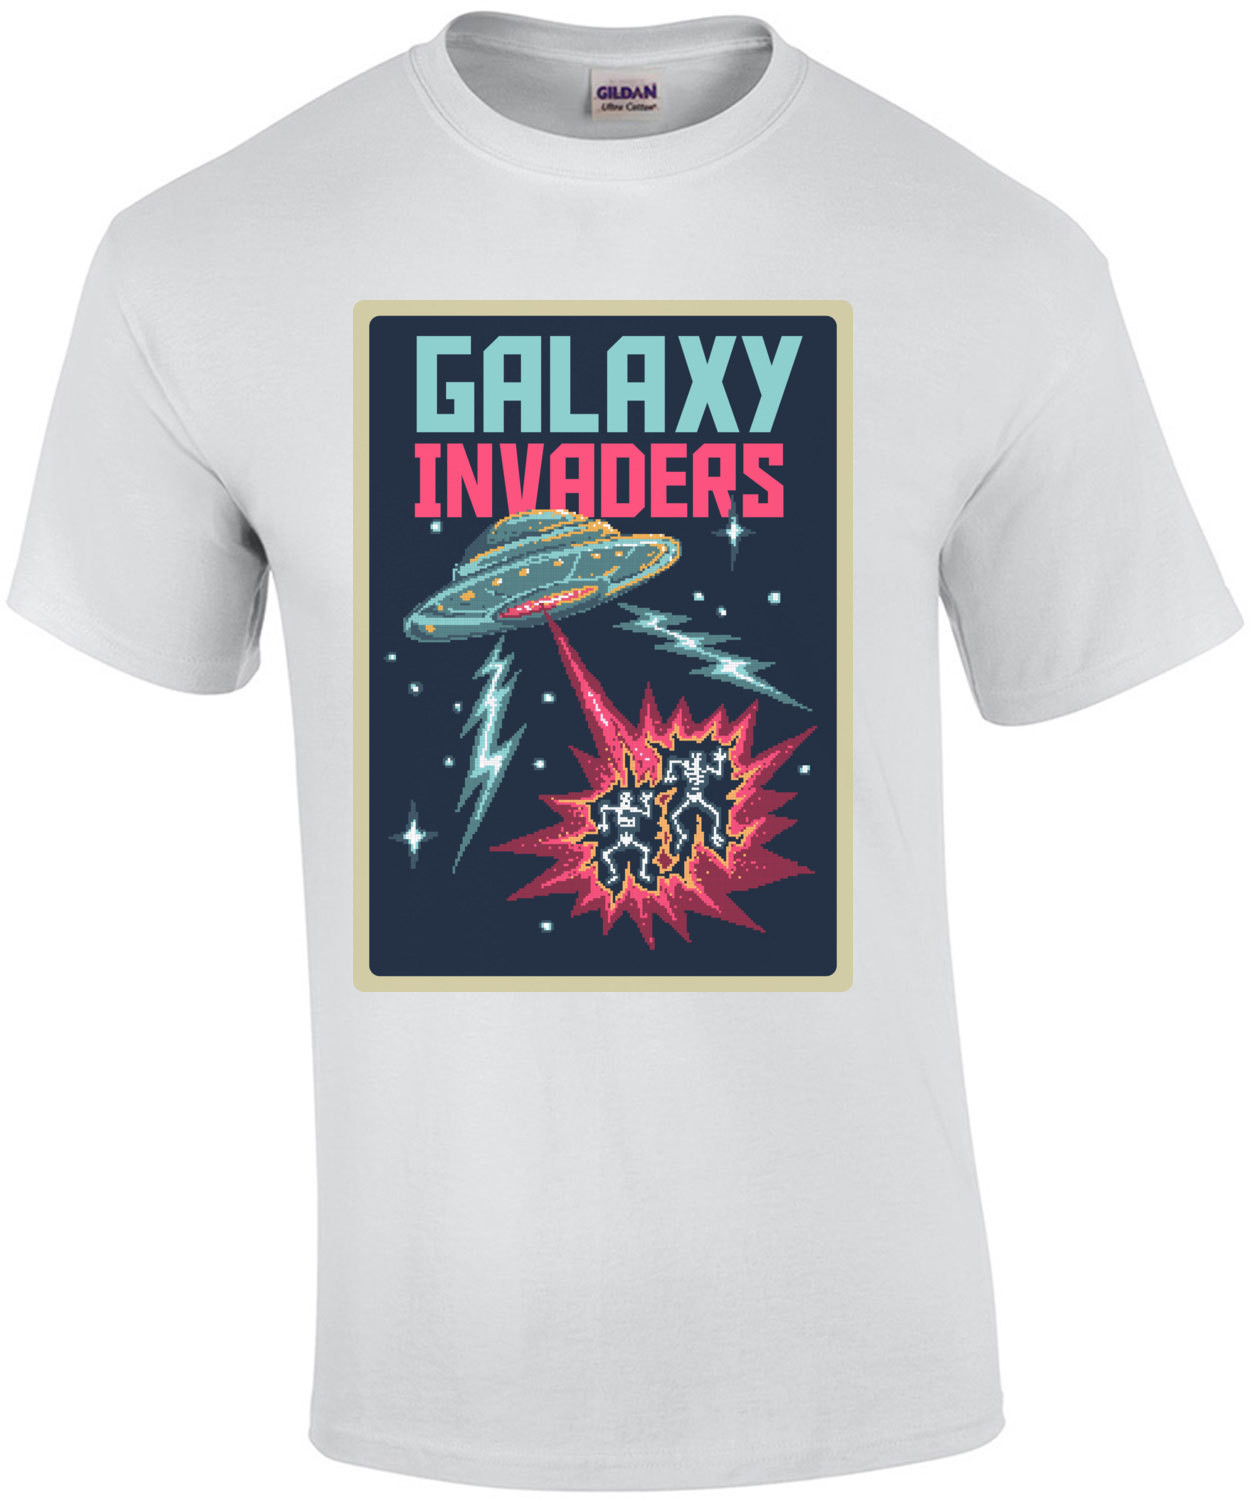 Galaxy Invaders Retro Movie Poster T-Shirt